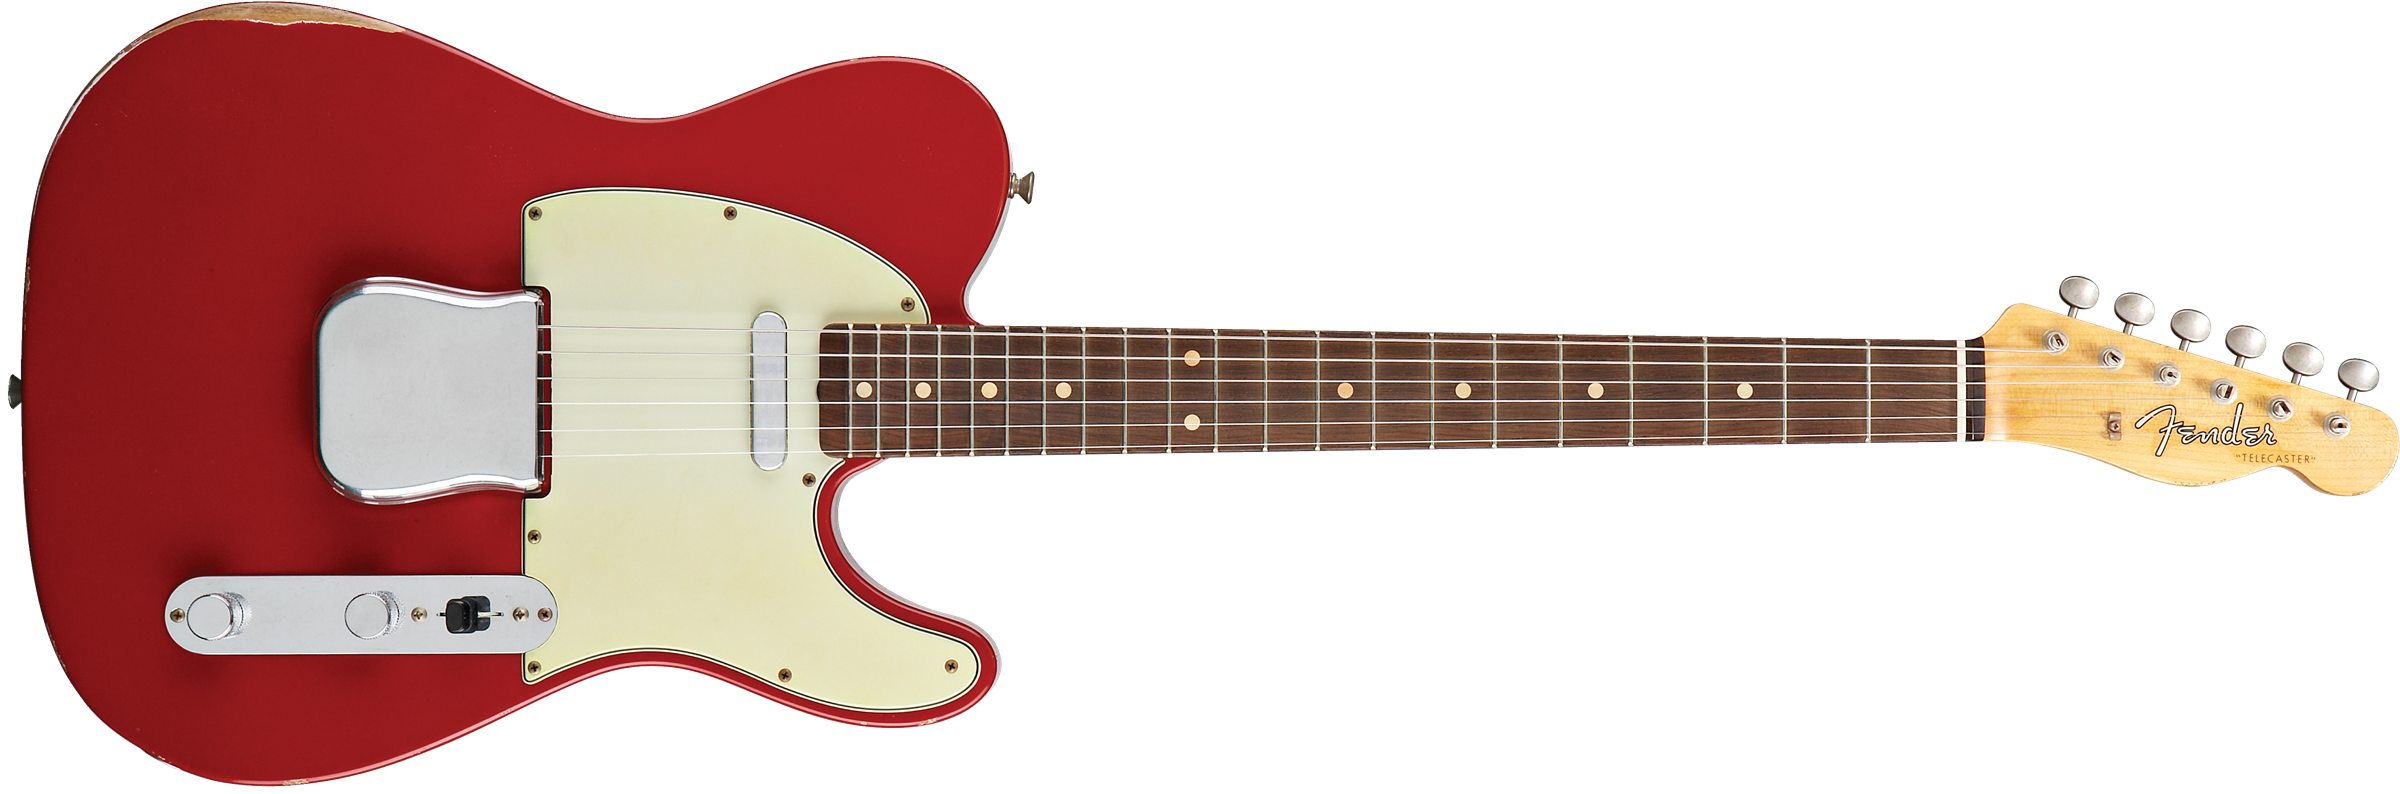 Telecaster Electric Guitars Fender Esquire Wiring Harness Limited Wildwood 10 1959 Relic Faded Dakota Red